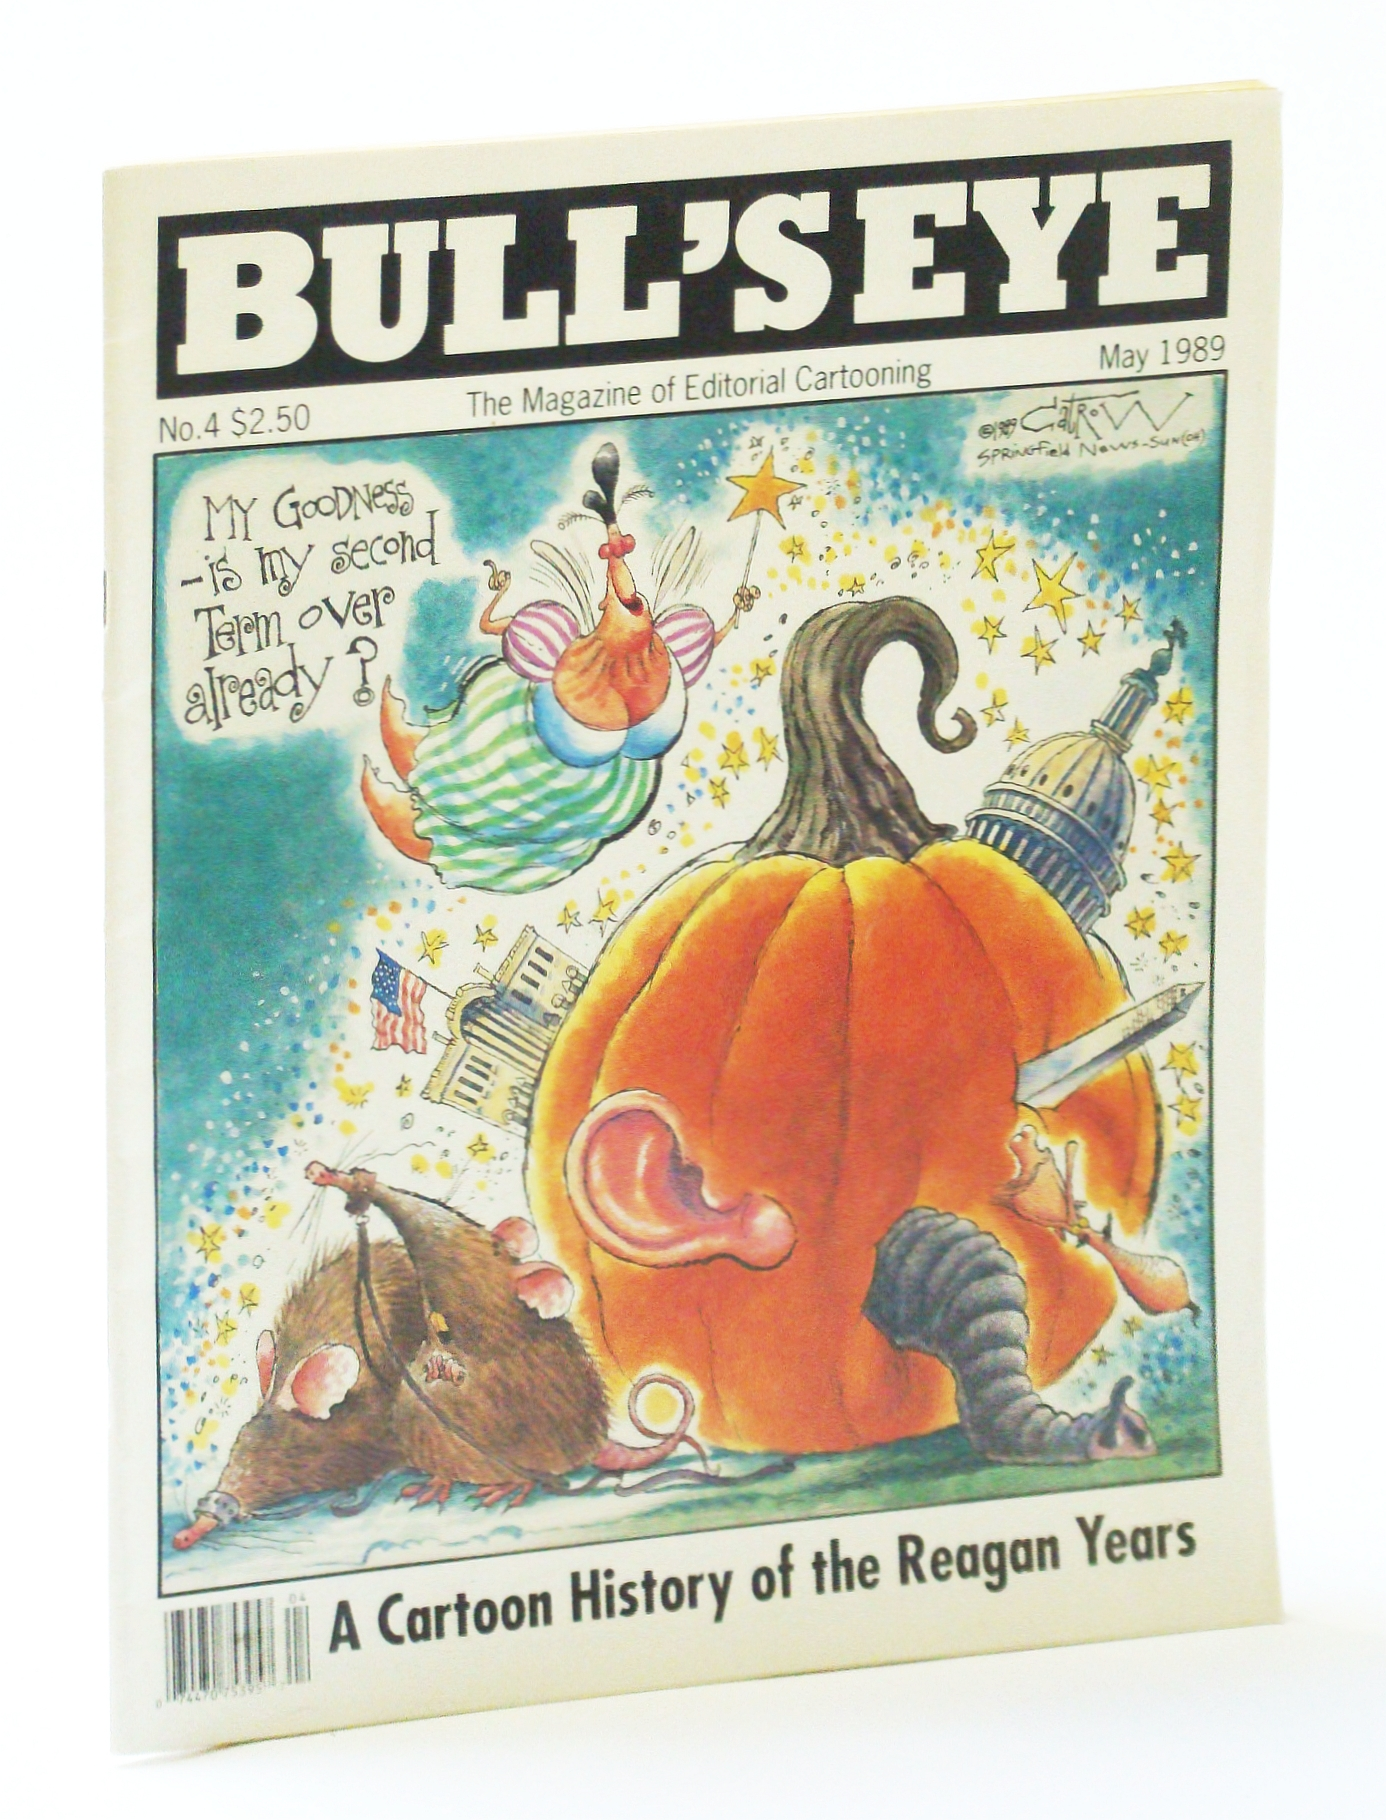 Image for Bull's Eye - The Magazine of Editorial Cartooning, No. 4, May 1989 - A Cartoon History of the Reagan Years